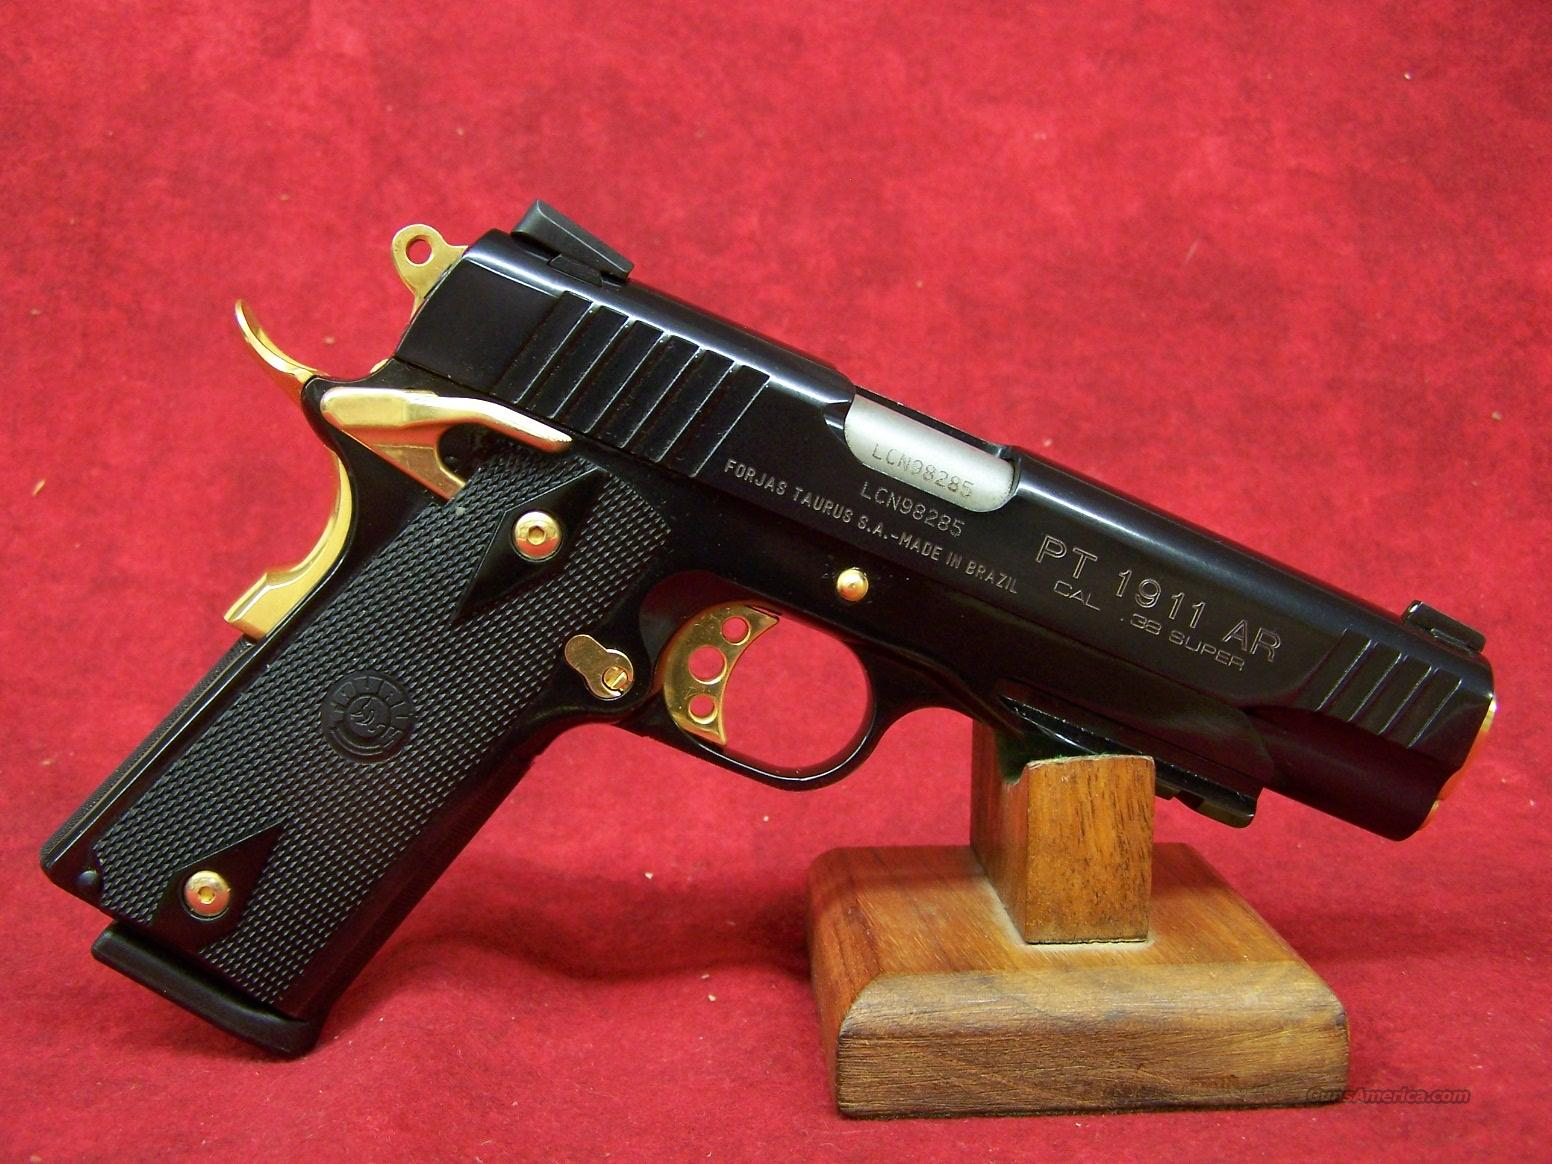 Similiar Gold 38 Keywords Diagram Colt 1911 Cup Lzk Gallery Taurus Super With Accents And Rai For Sale